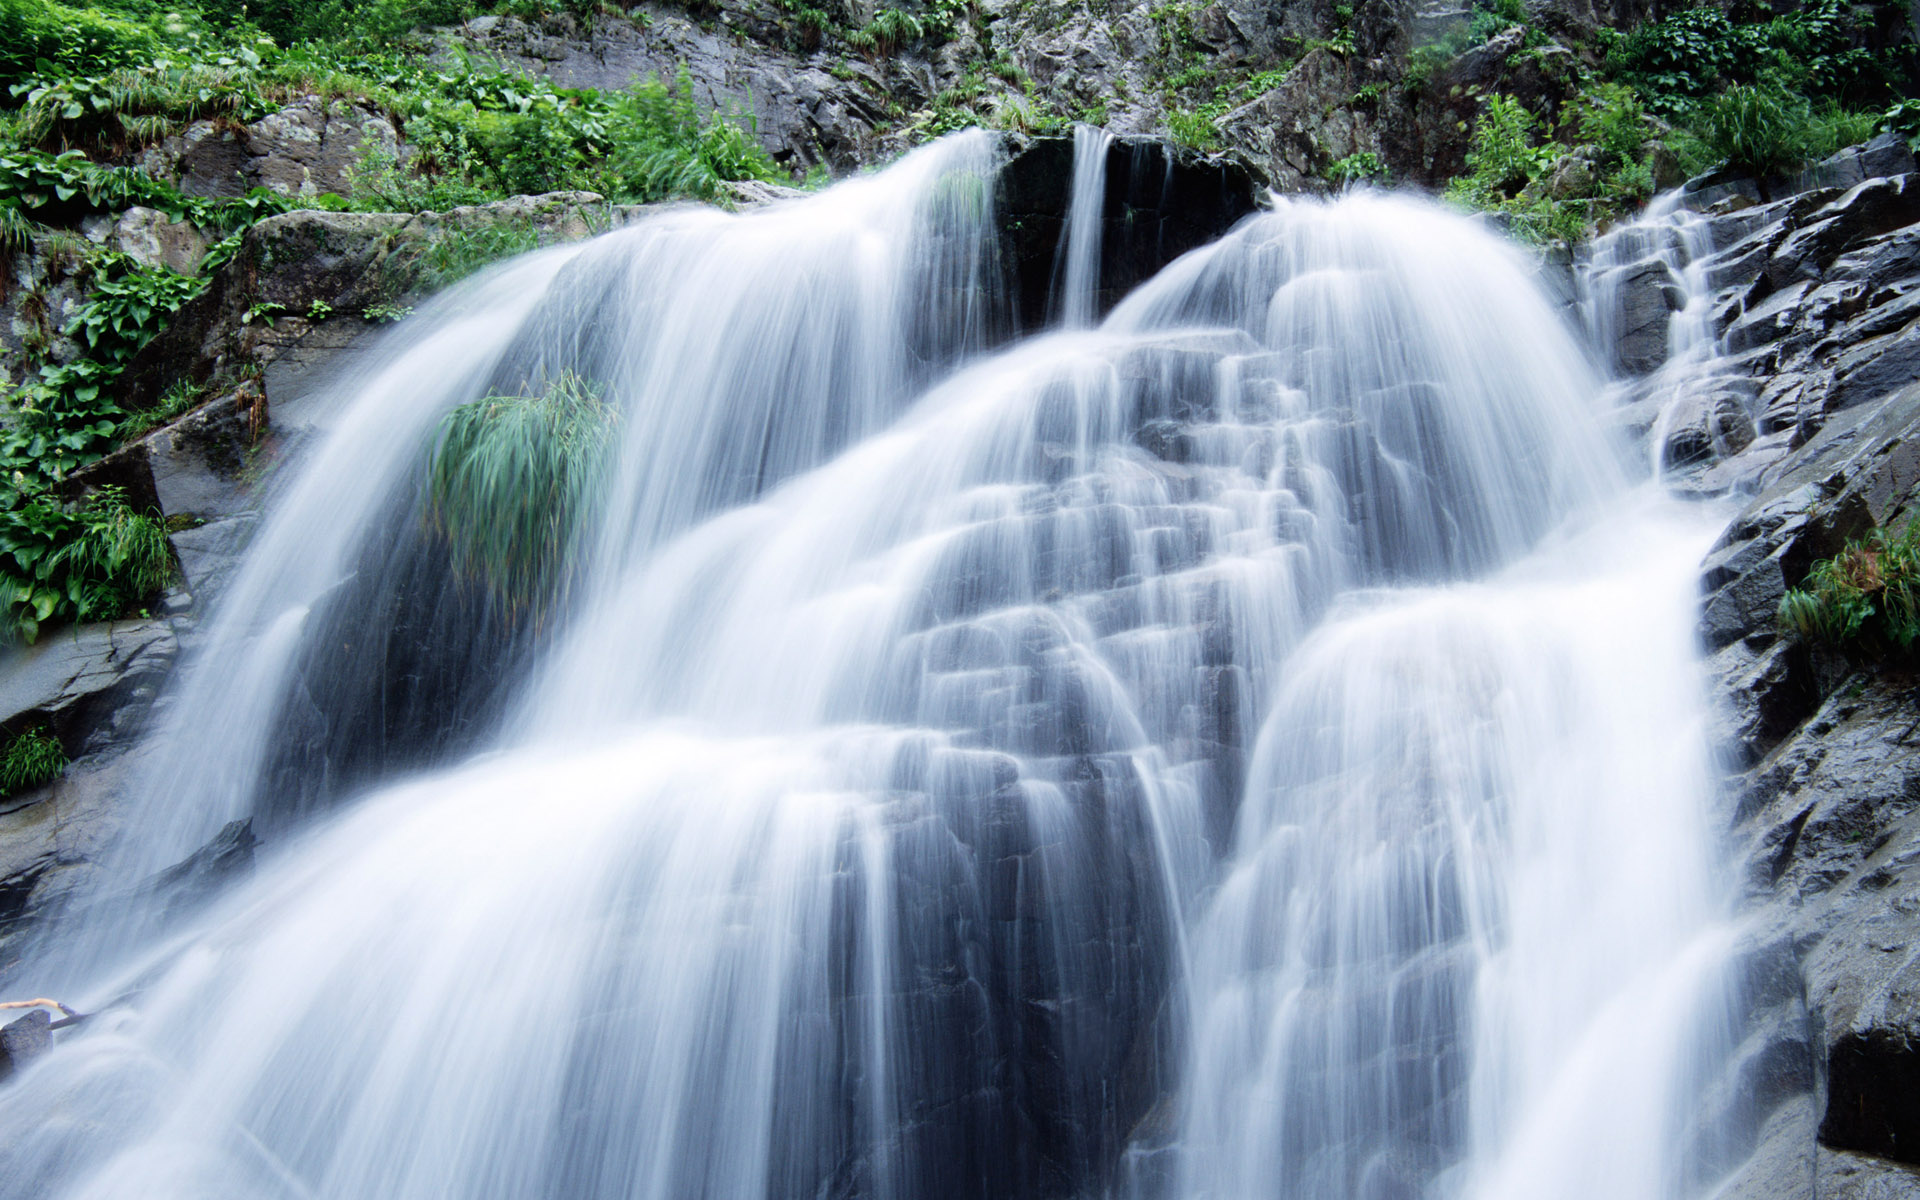 Waterfalls, streams, 4900